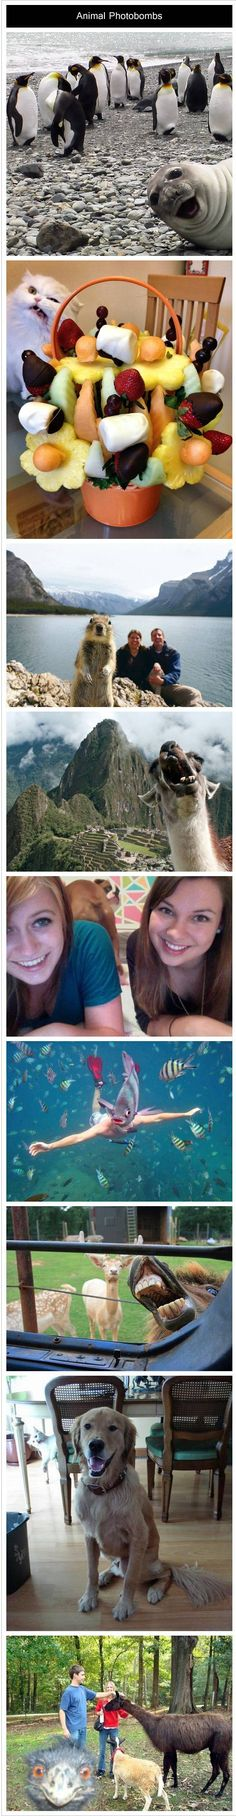 Animals do the best photo bombs. Aaah Photo bombing! I do it every time the opportunity arises